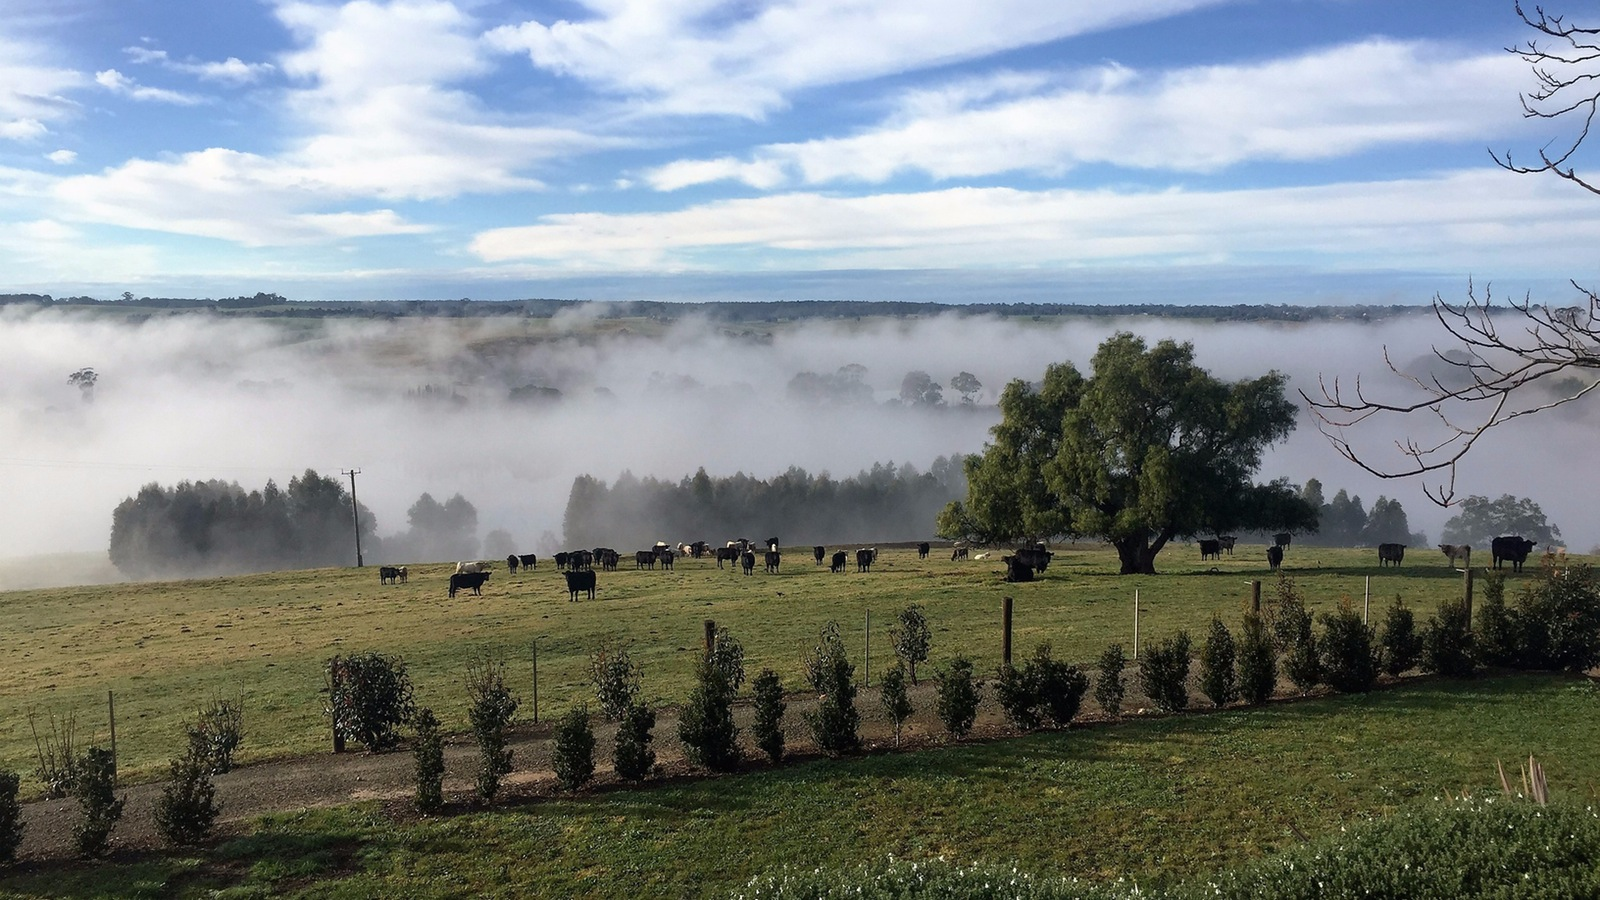 Mist clearing over the paddocks